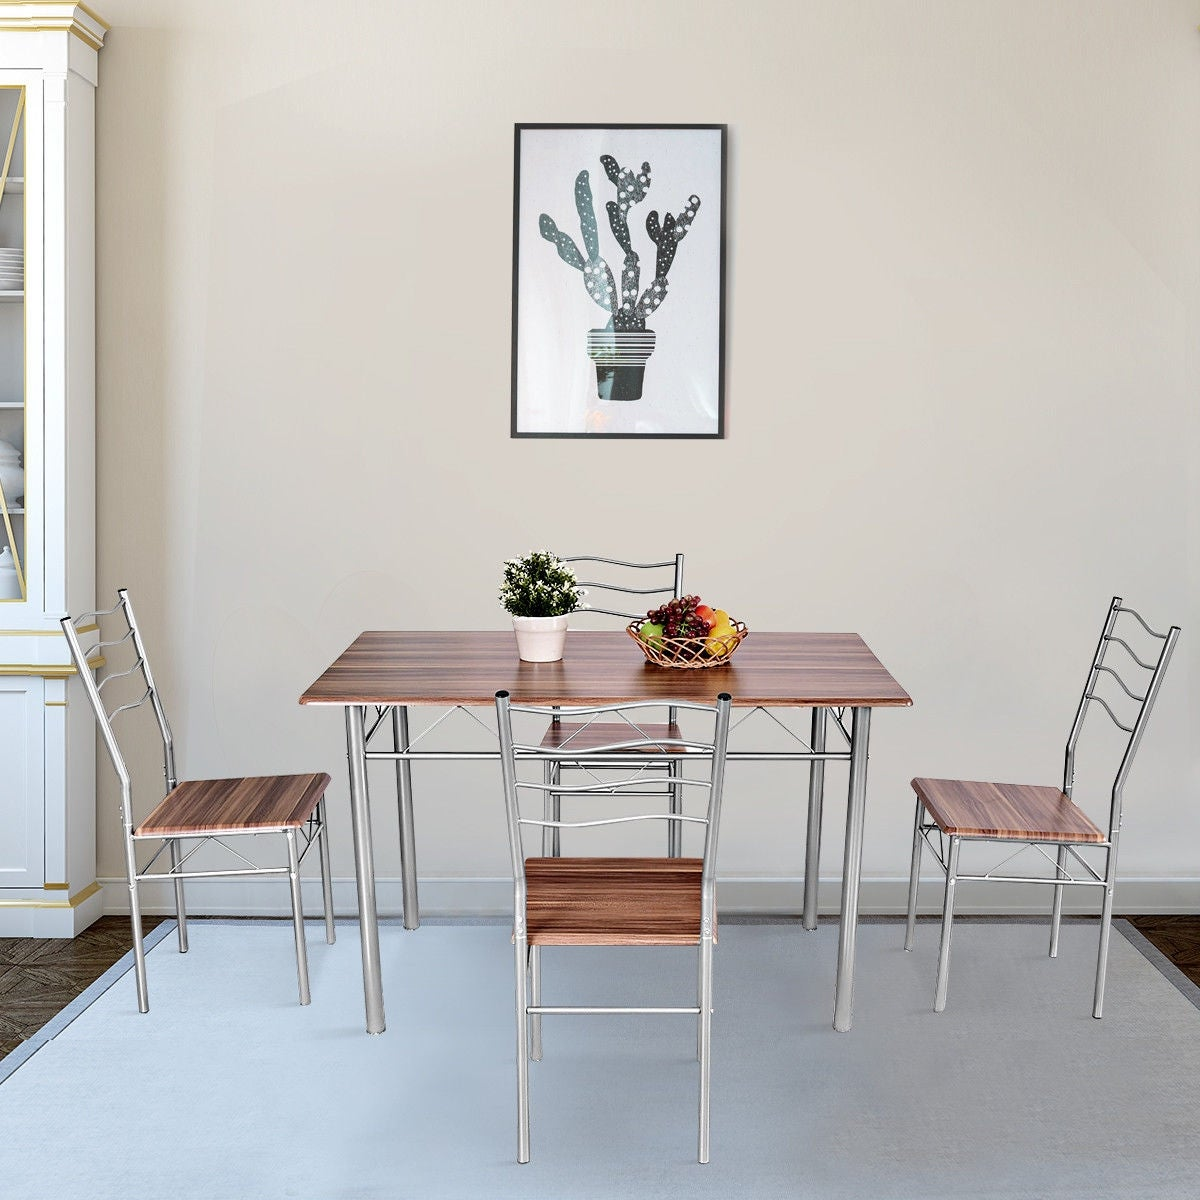 Costway 5 Piece Dining Table Set Wood Metal Kitchen Breakfast Furniture W 4 Chair Walnut As Pic Free Shipping Today 19626762